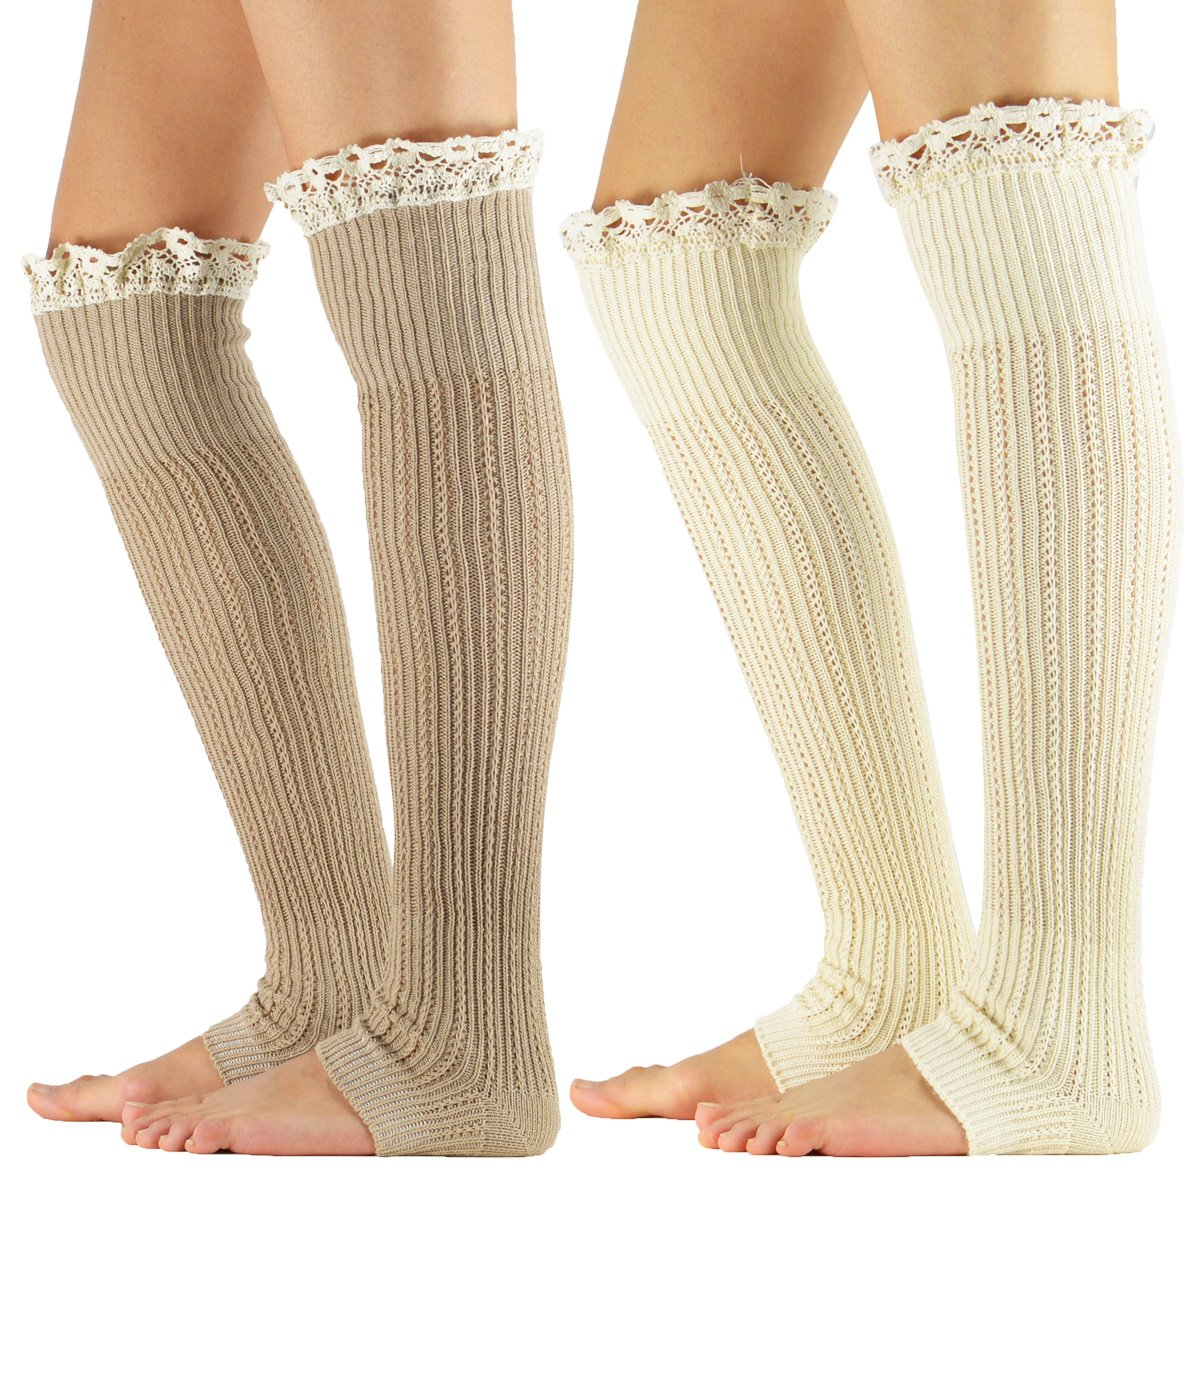 Zando Lace Boot Crochet Knitted Cable Wide Calf Boot Leg Cuffs Socks for Womens Winter Soft Knee High Leg Warmers 2 Pairs Khaki Beige Leg Warmers